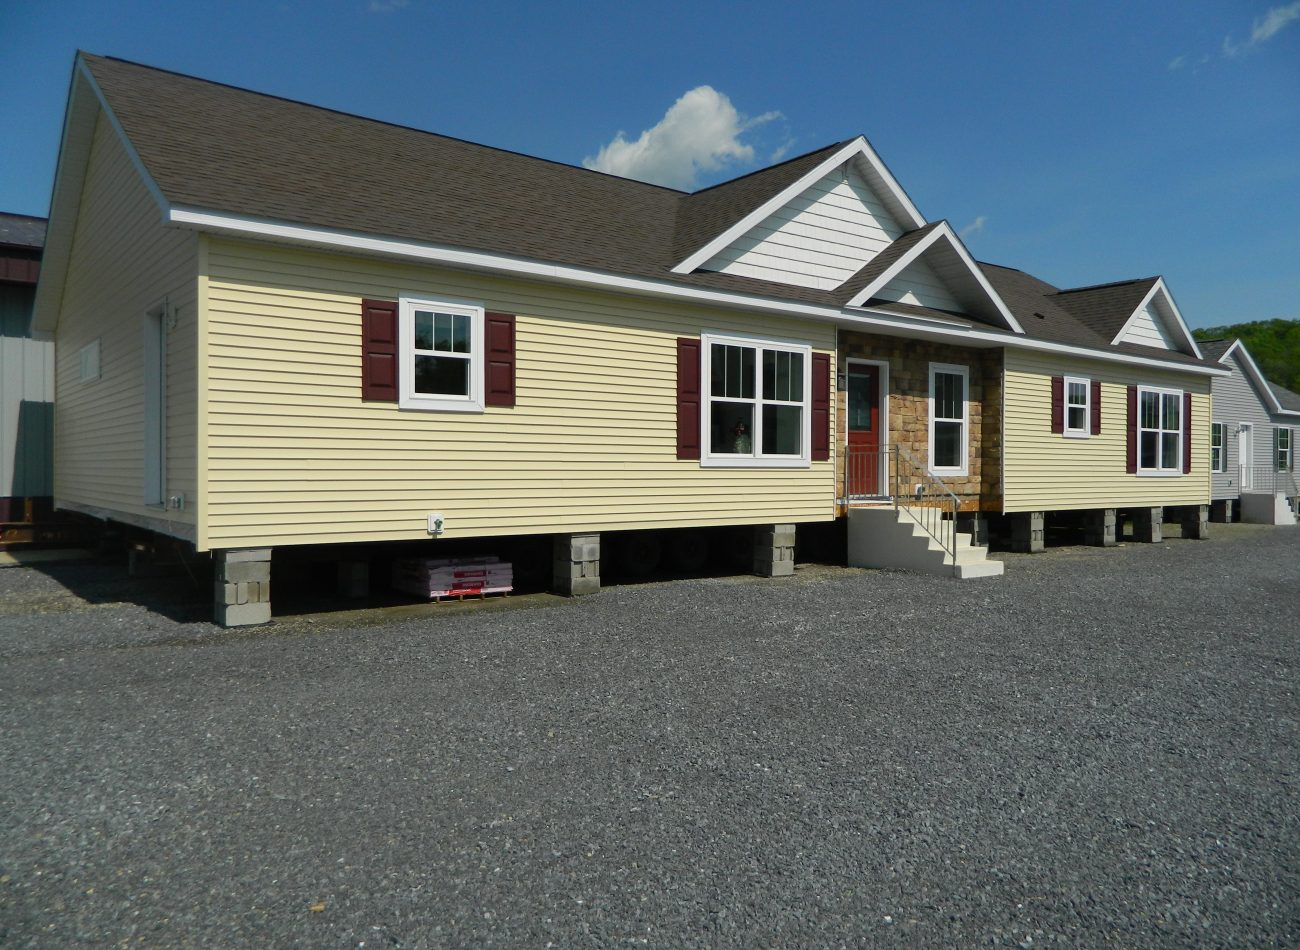 Enjoyable Butters Homes Modular And Manufactured Homes Download Free Architecture Designs Scobabritishbridgeorg